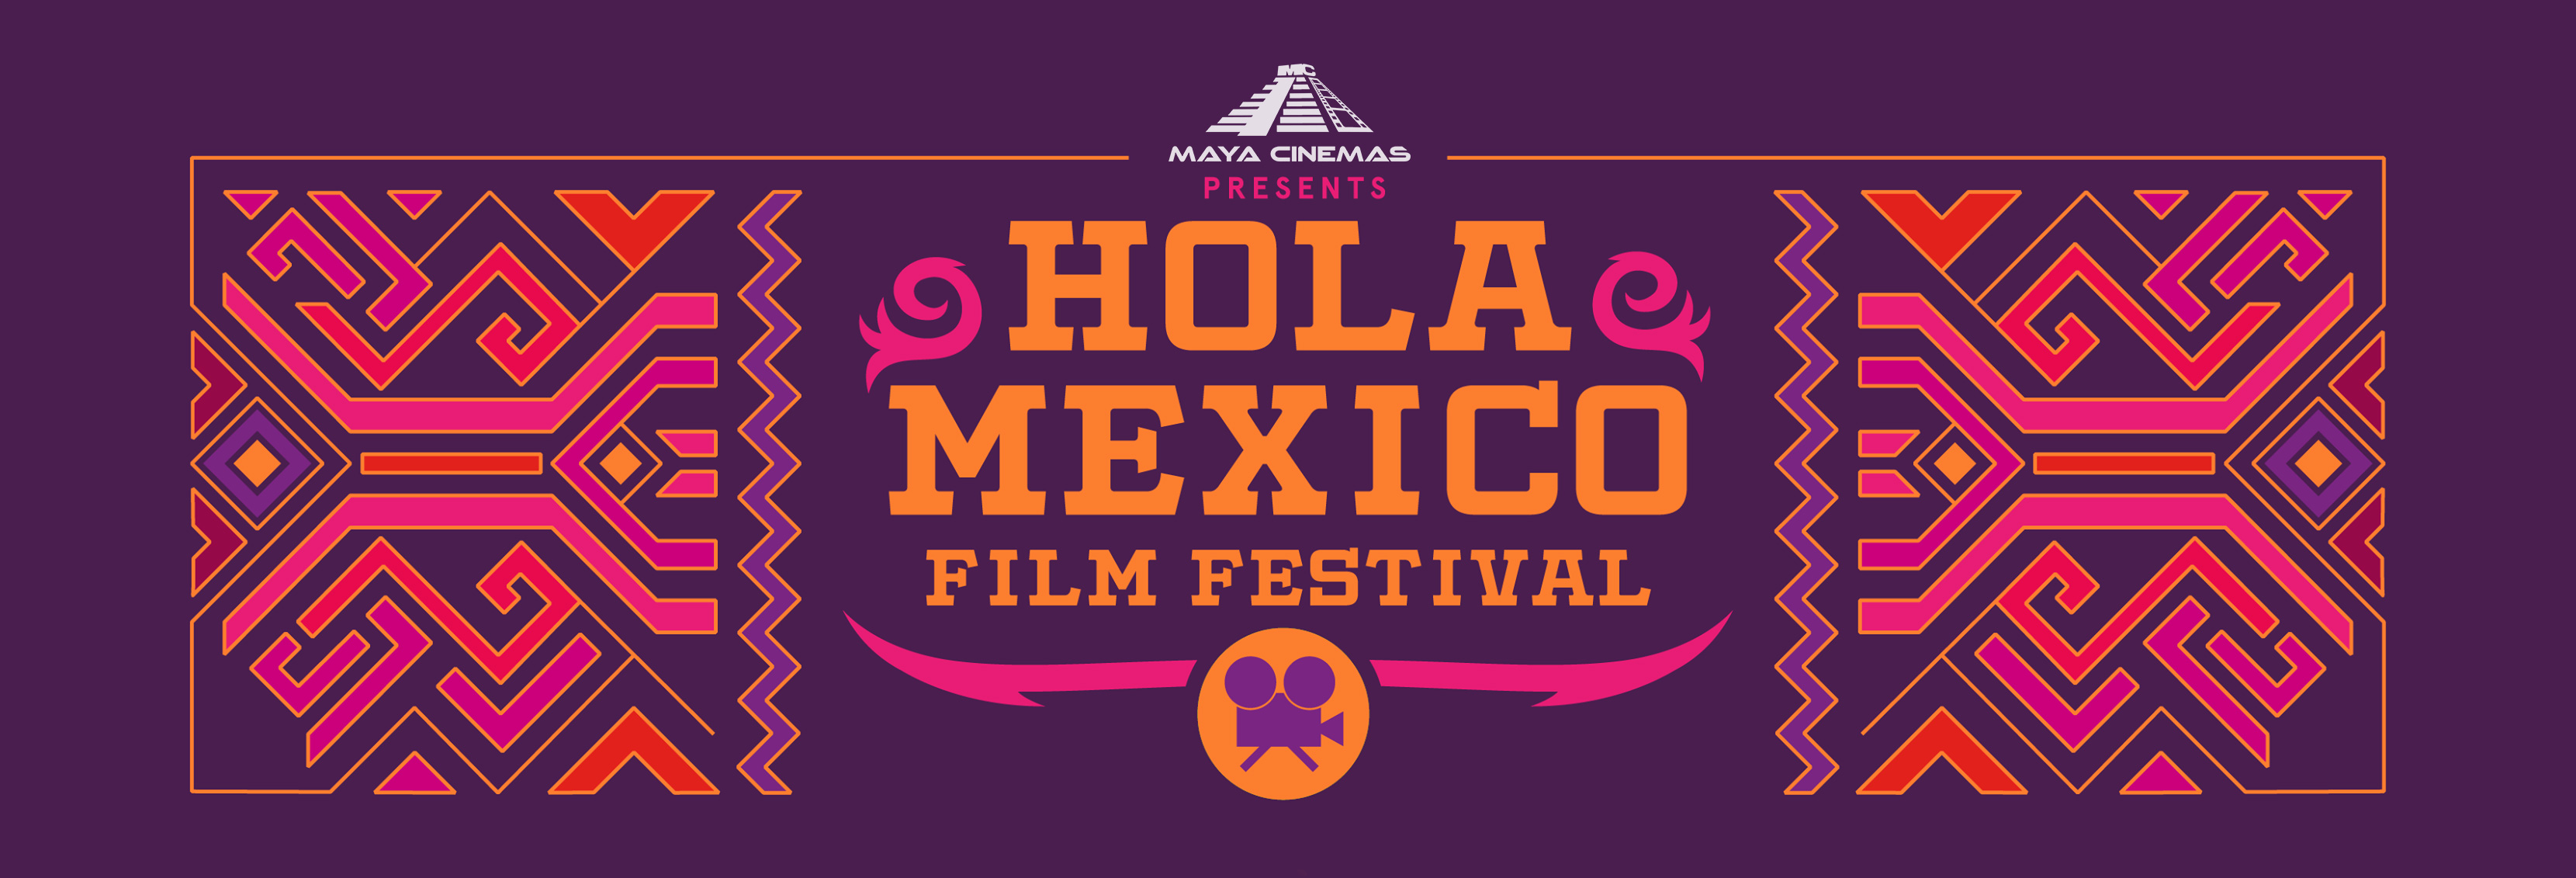 Desktop hero image for Hola Mexico Film Festival